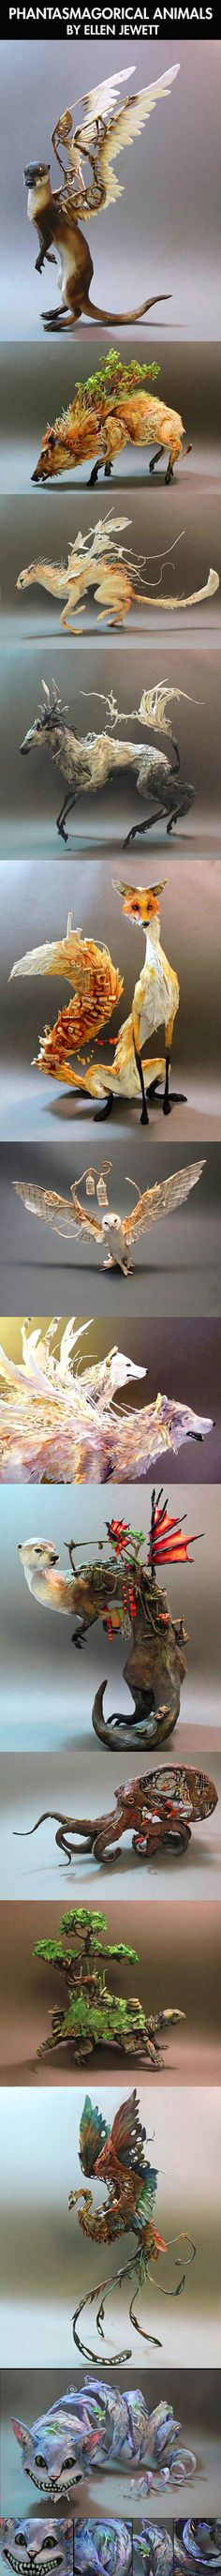 Amazing animal sculpture art.